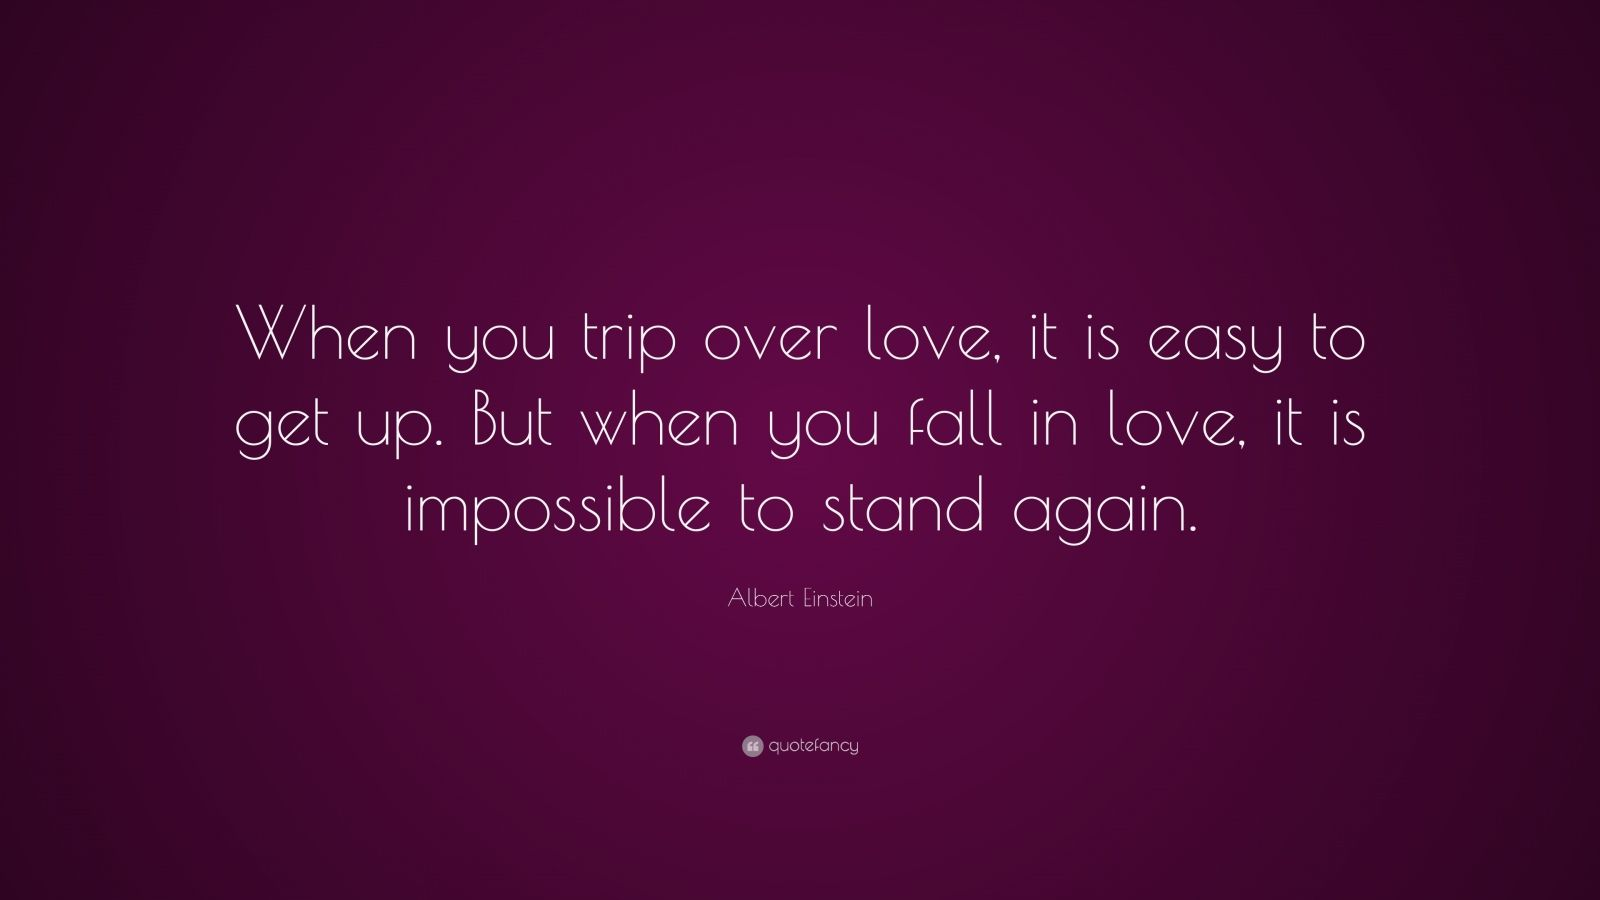 Albert Einstein Quotes When You Trip Over Love